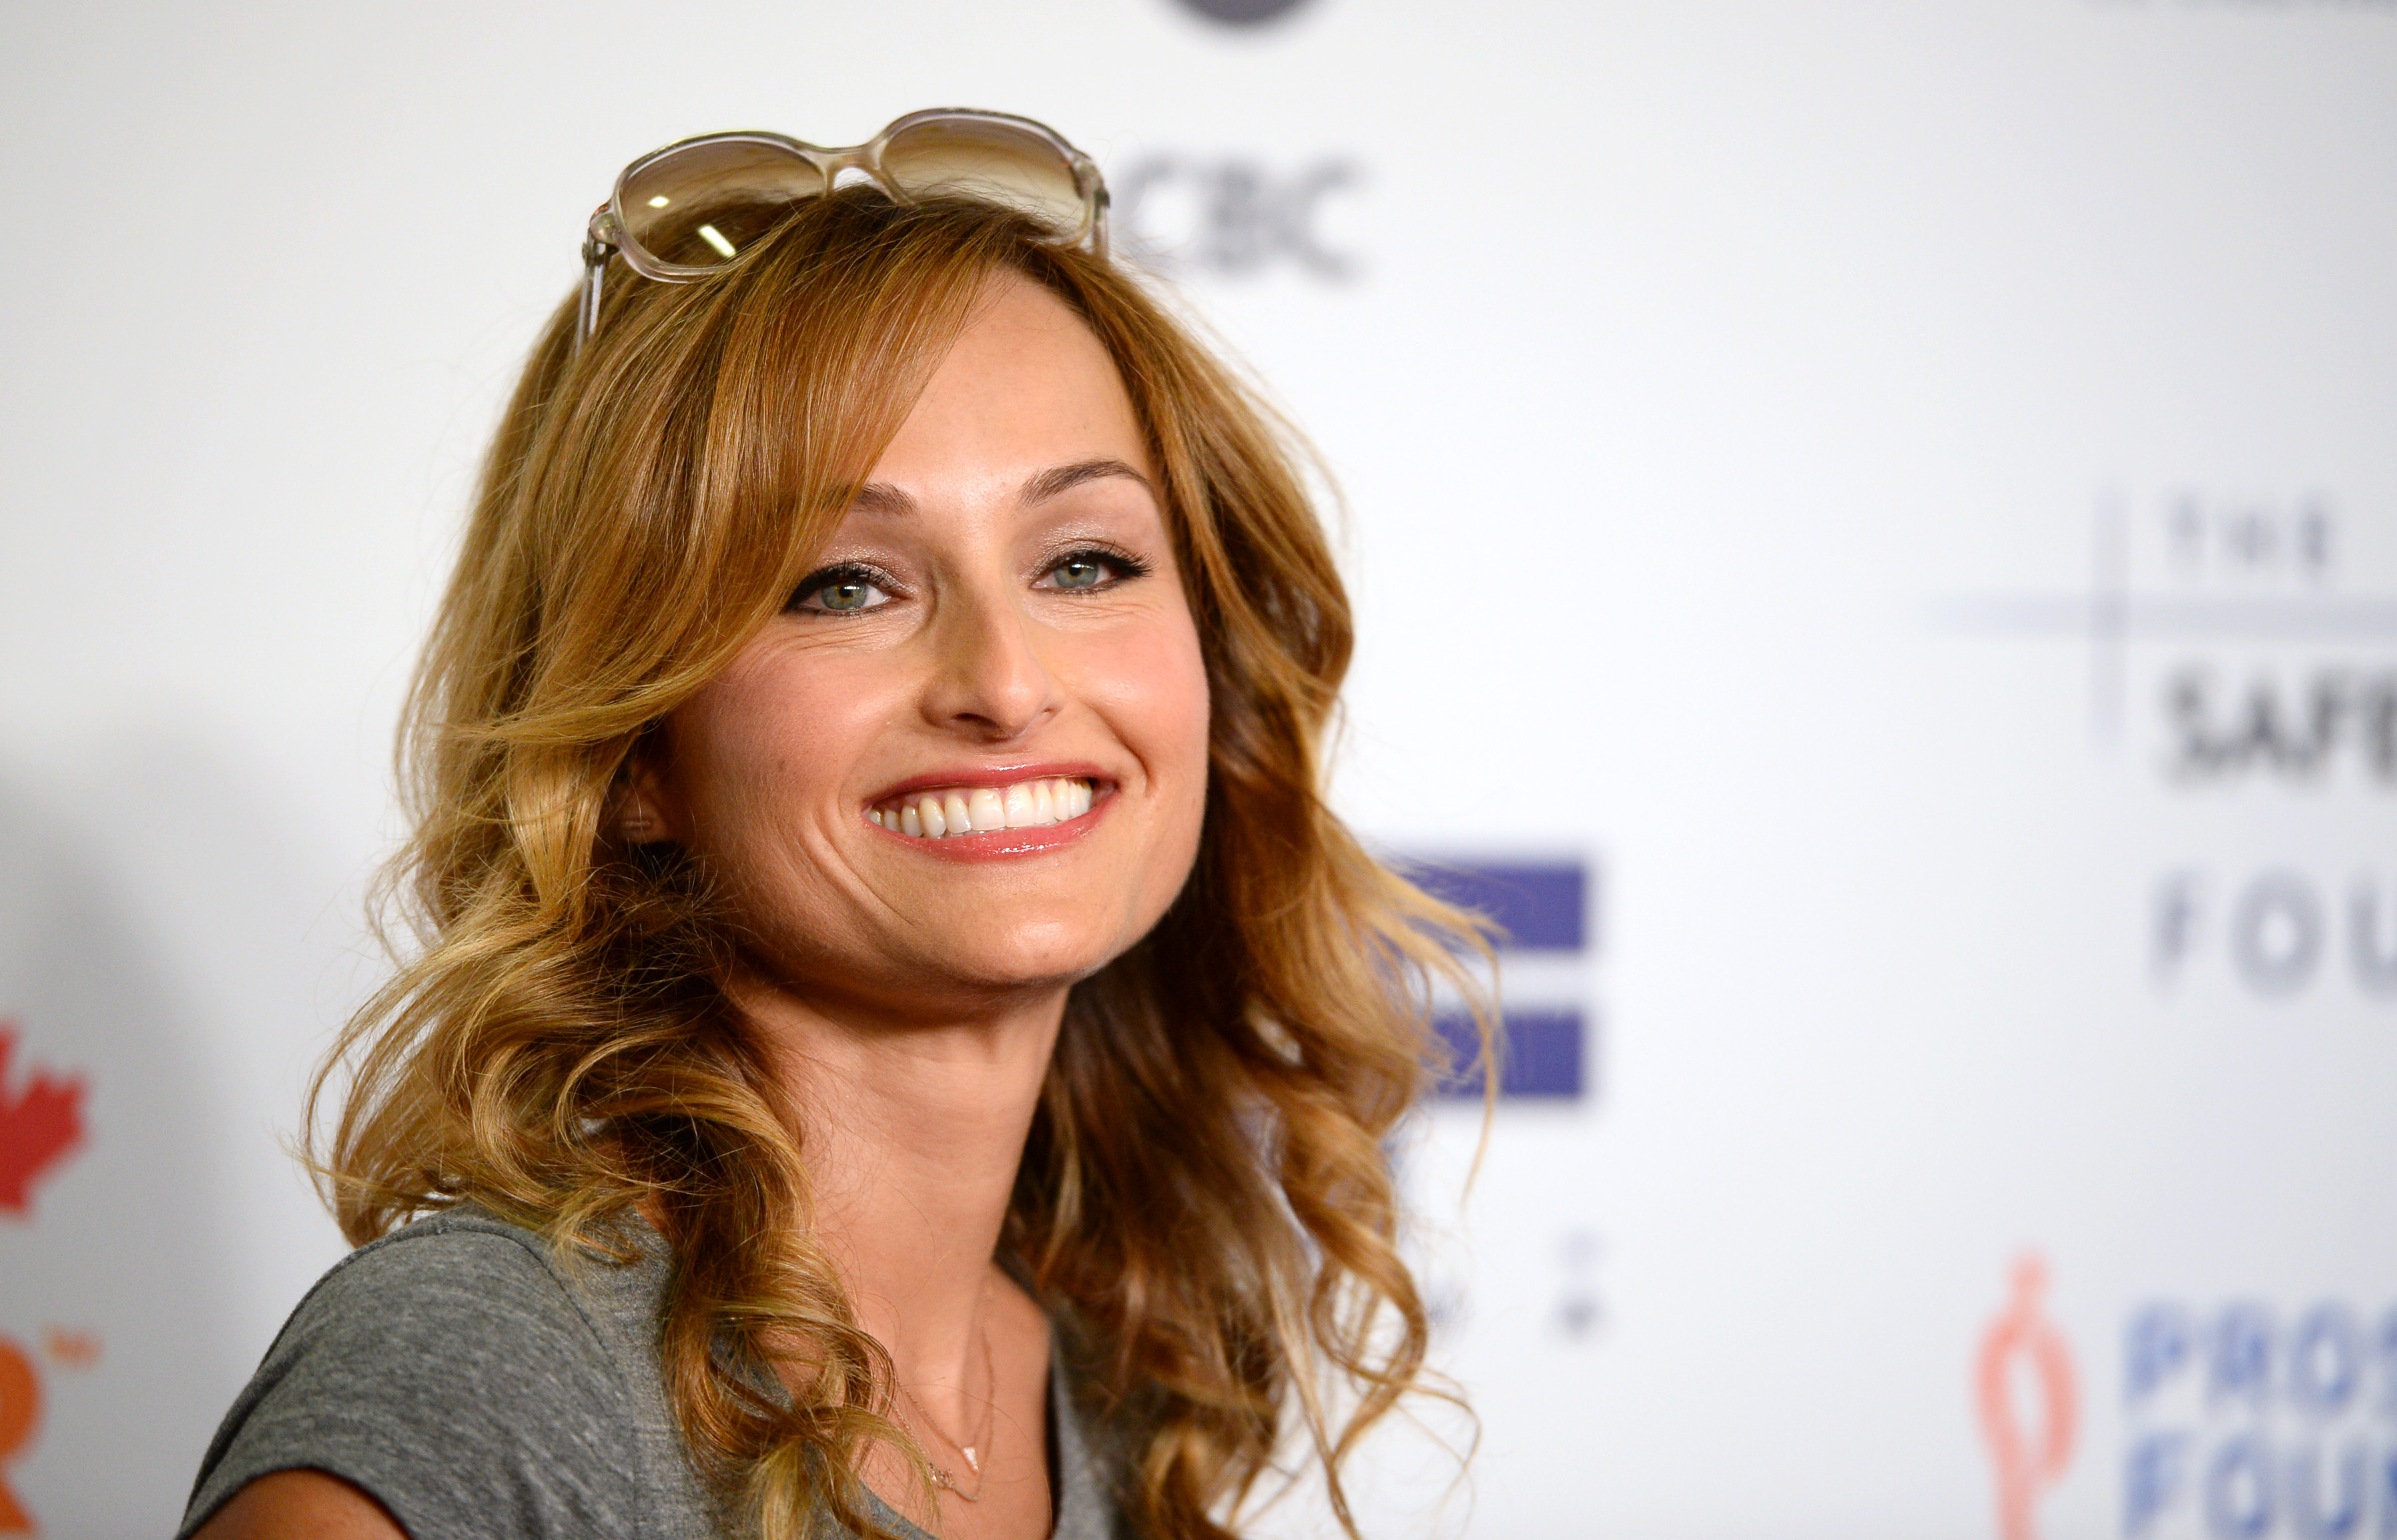 Giada De Laurentiis on her rise to fame, new beginnings and where she eats in D.C.